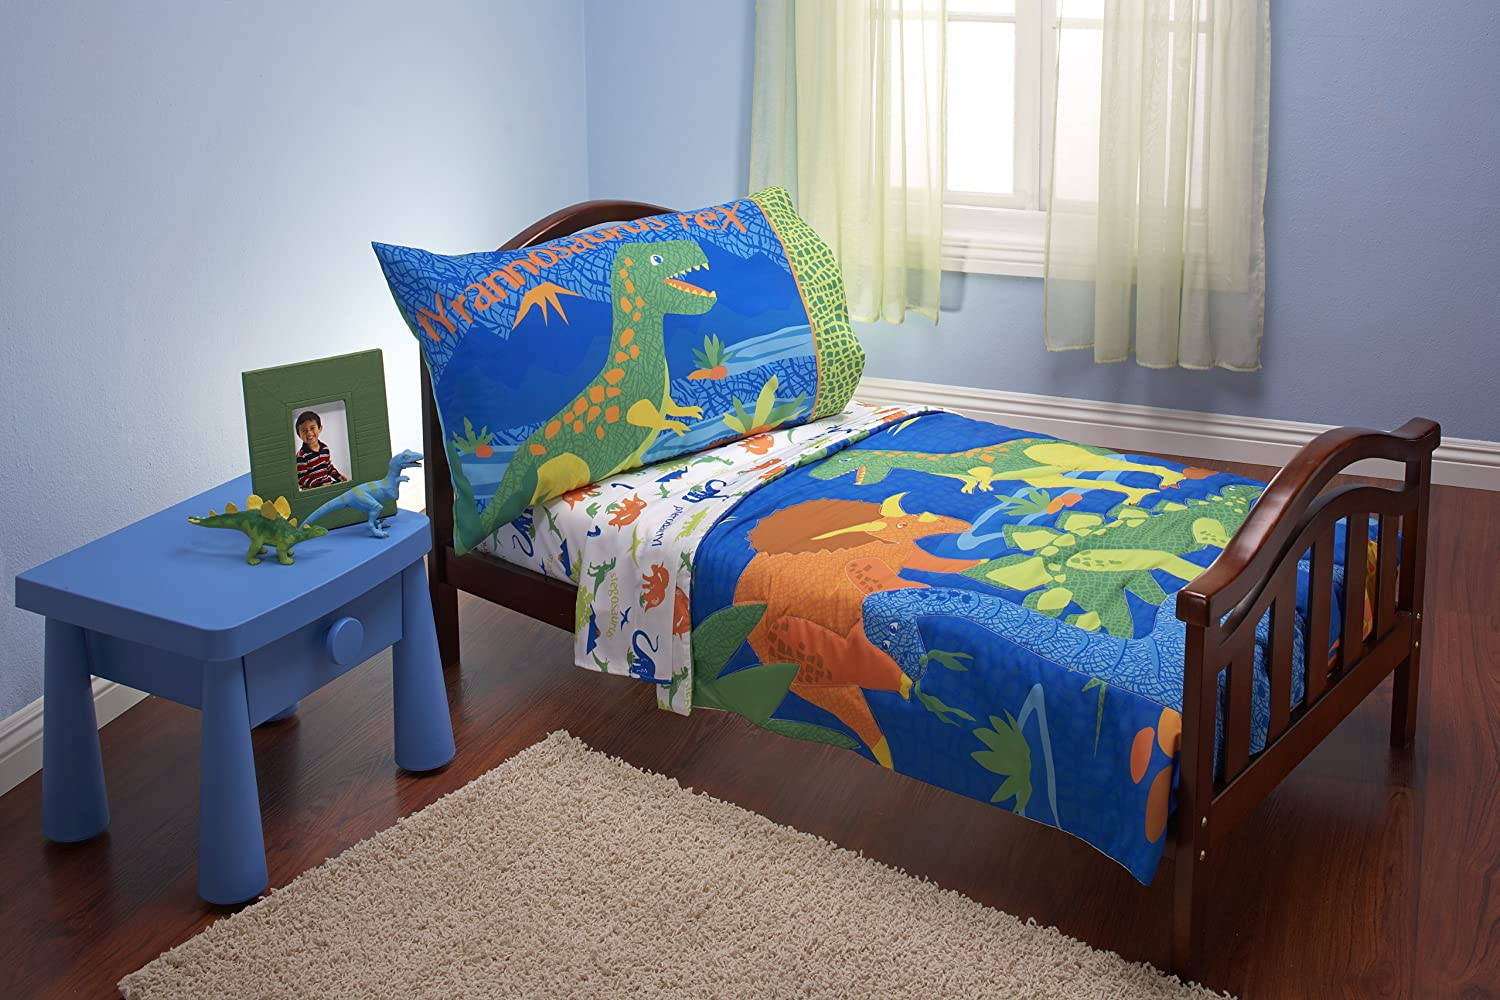 dinosaur bedroom. Amazon com  Everything Kids 4 Piece Toddler Bedding Set Dinosaurs Bed Sheets Boy Baby